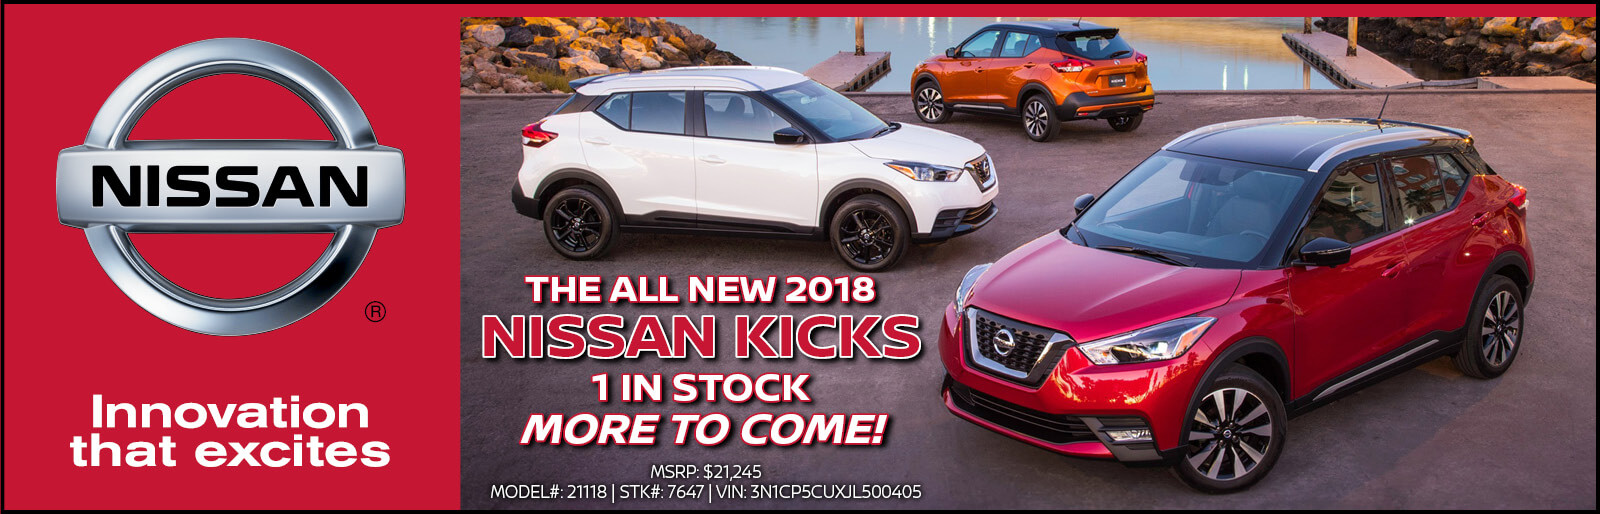 All New 2018 Nissan Kicks